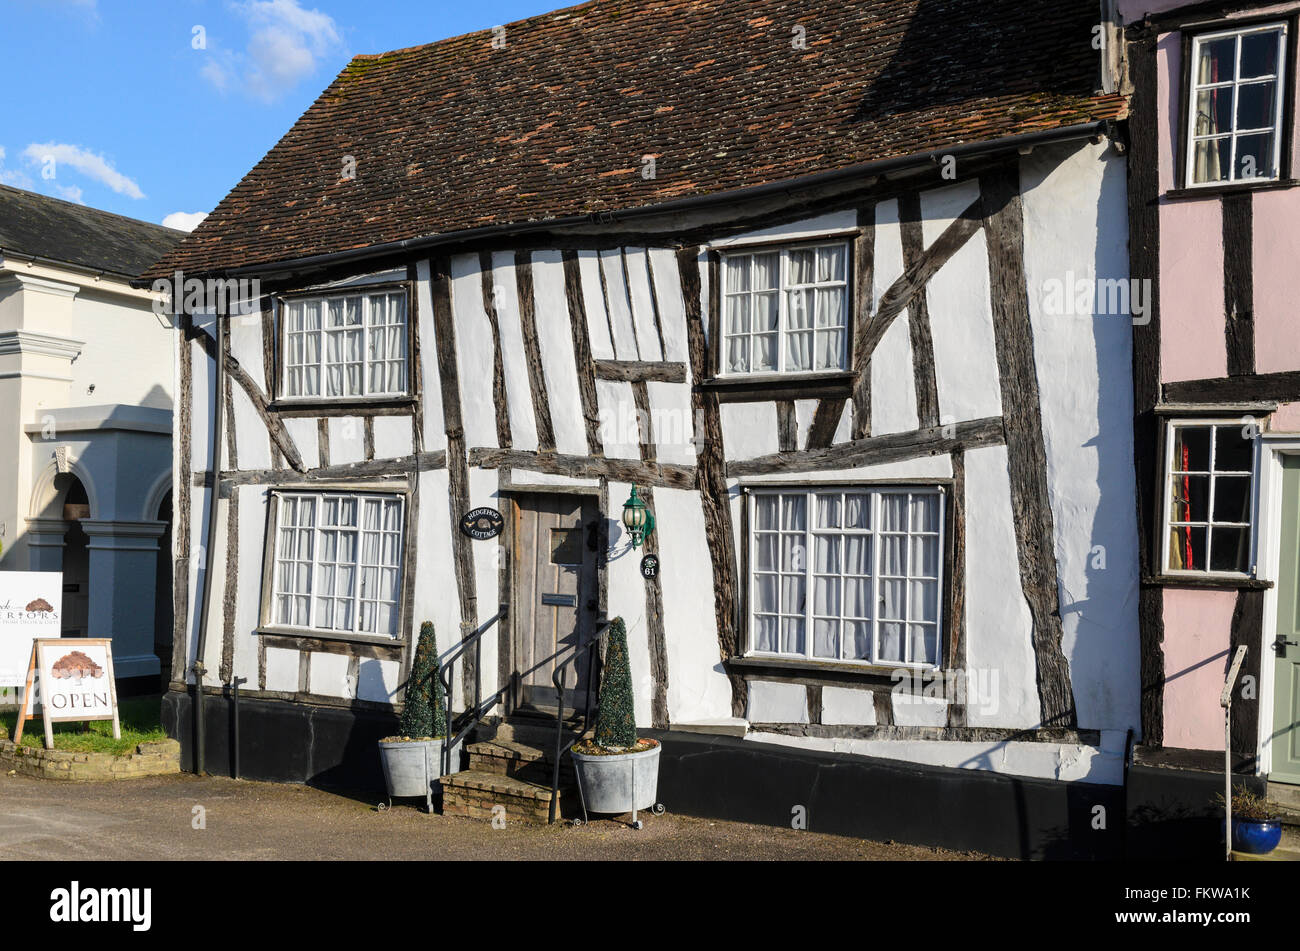 A medieval half timbered building on High Street, Lavenham, Suffolk, England, United Kingdom. - Stock Image